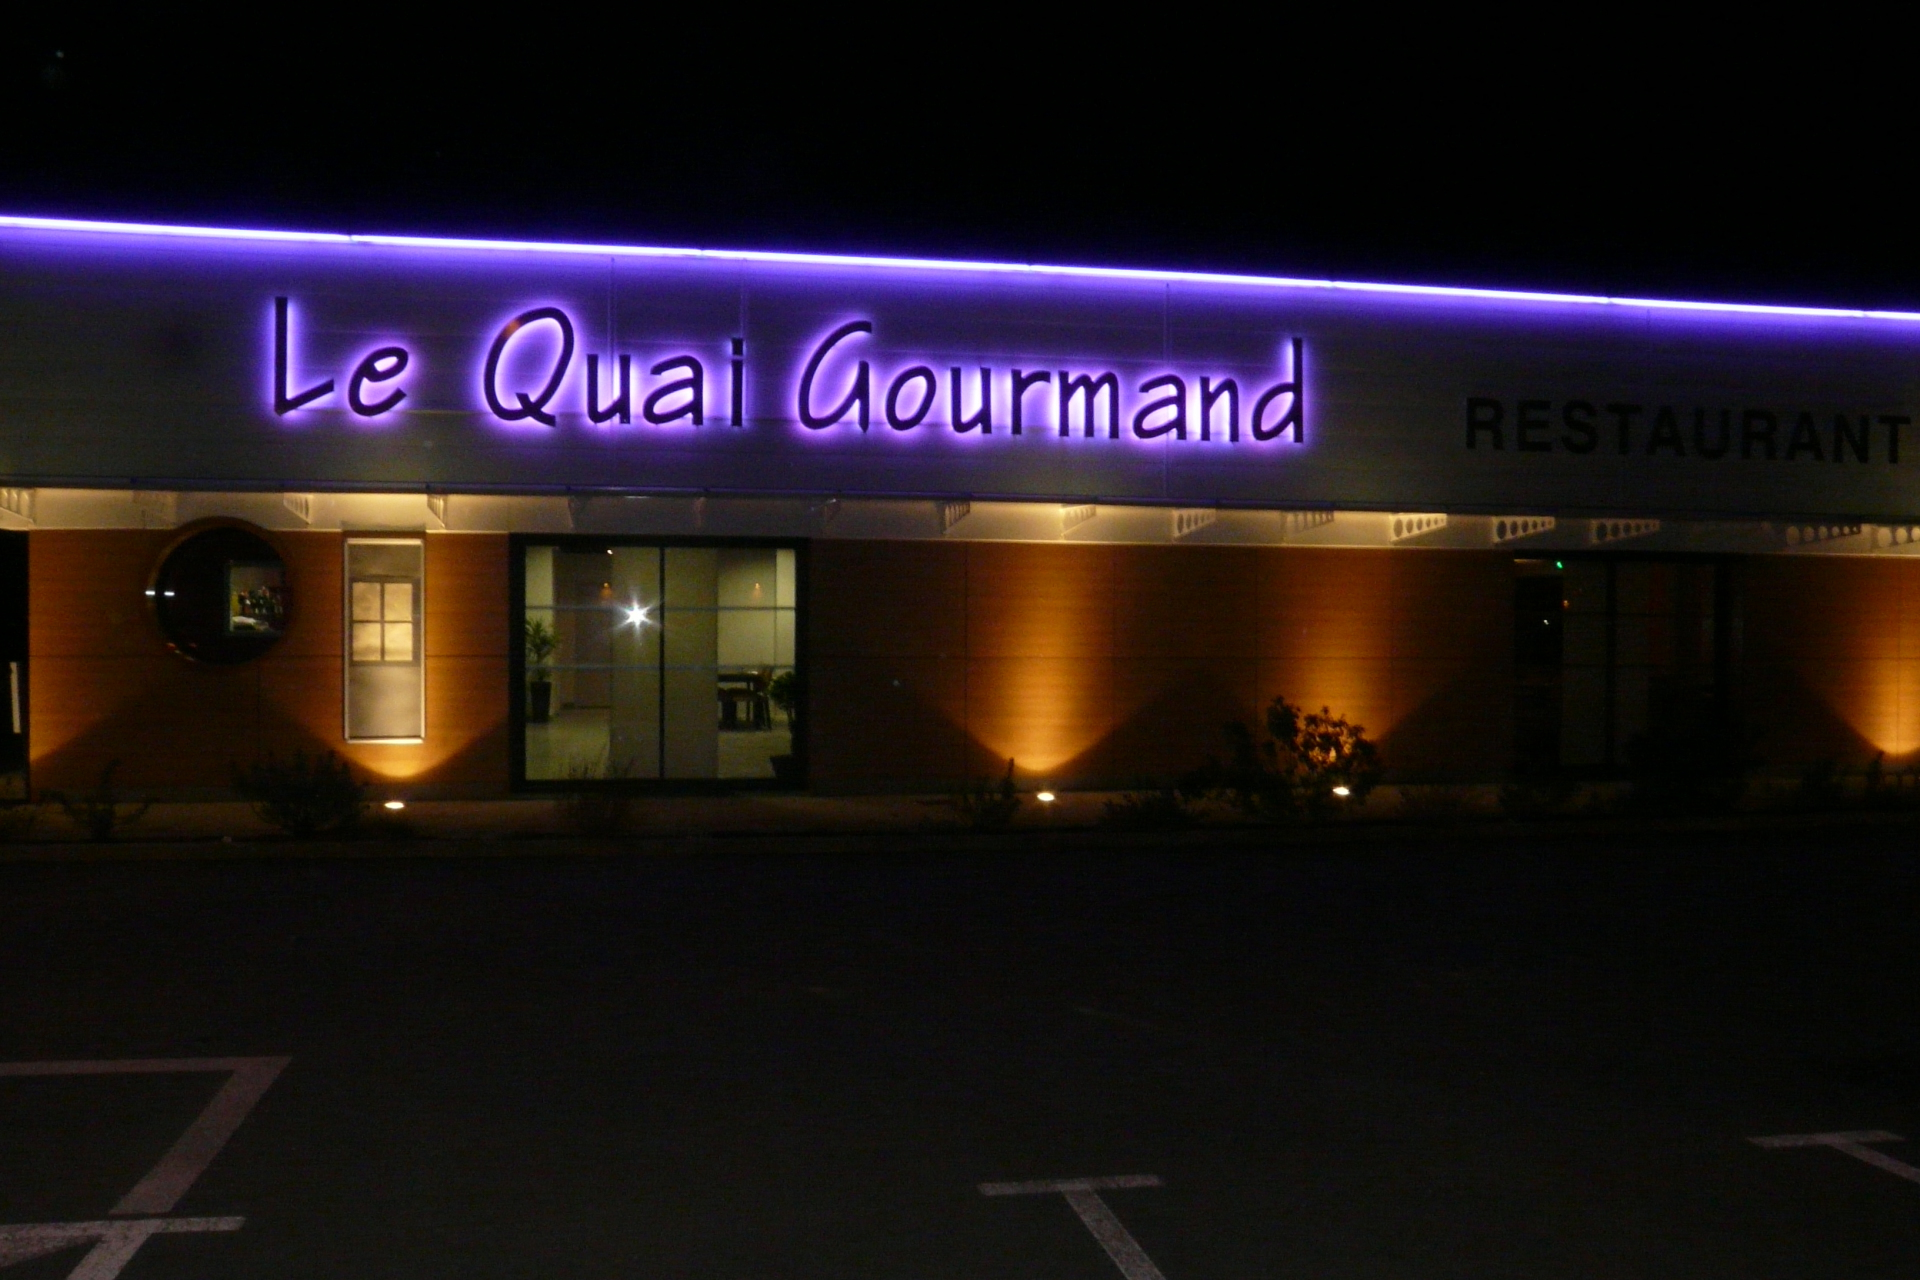 Le quai gourmand ; la chapelle Achard ; la Mothe Achard ; Classique; traditionnel; Classique ; restaurant